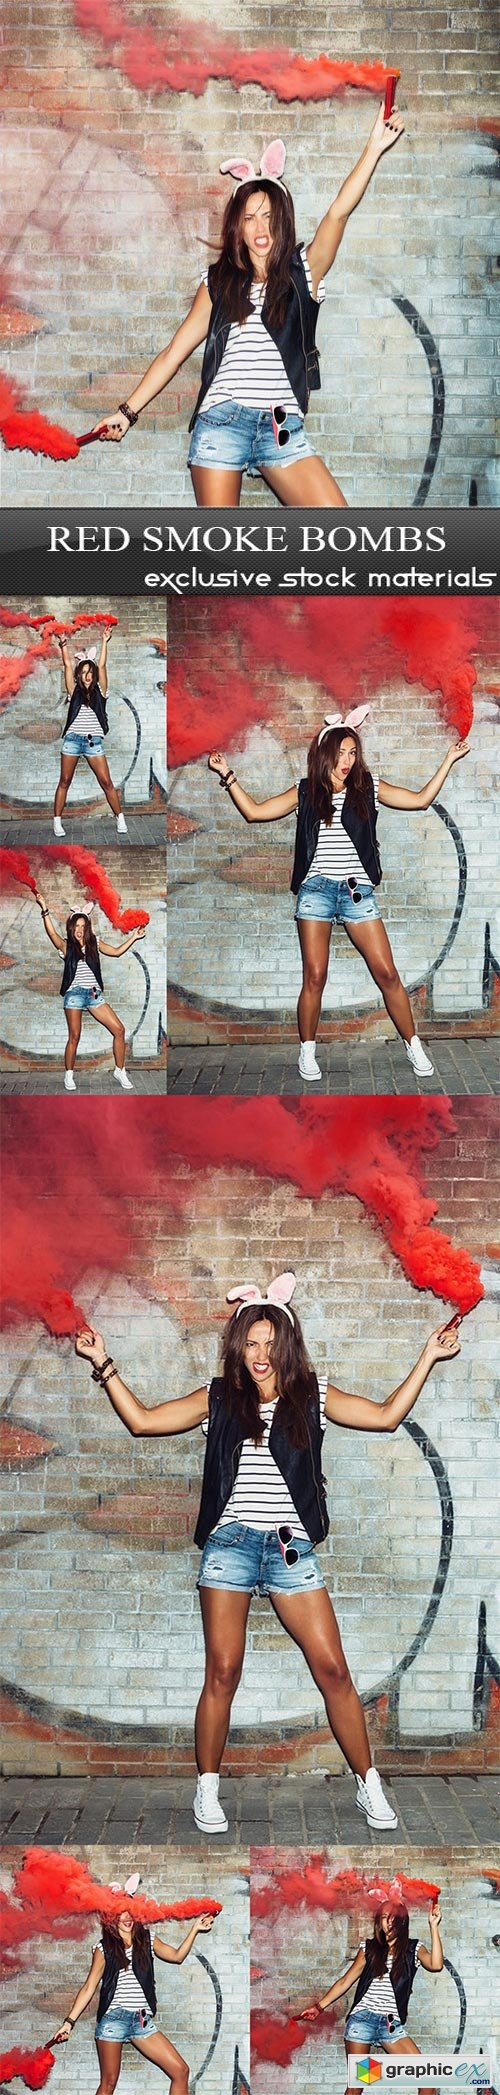 Red smoke bombs - 7 UHQ JPEG